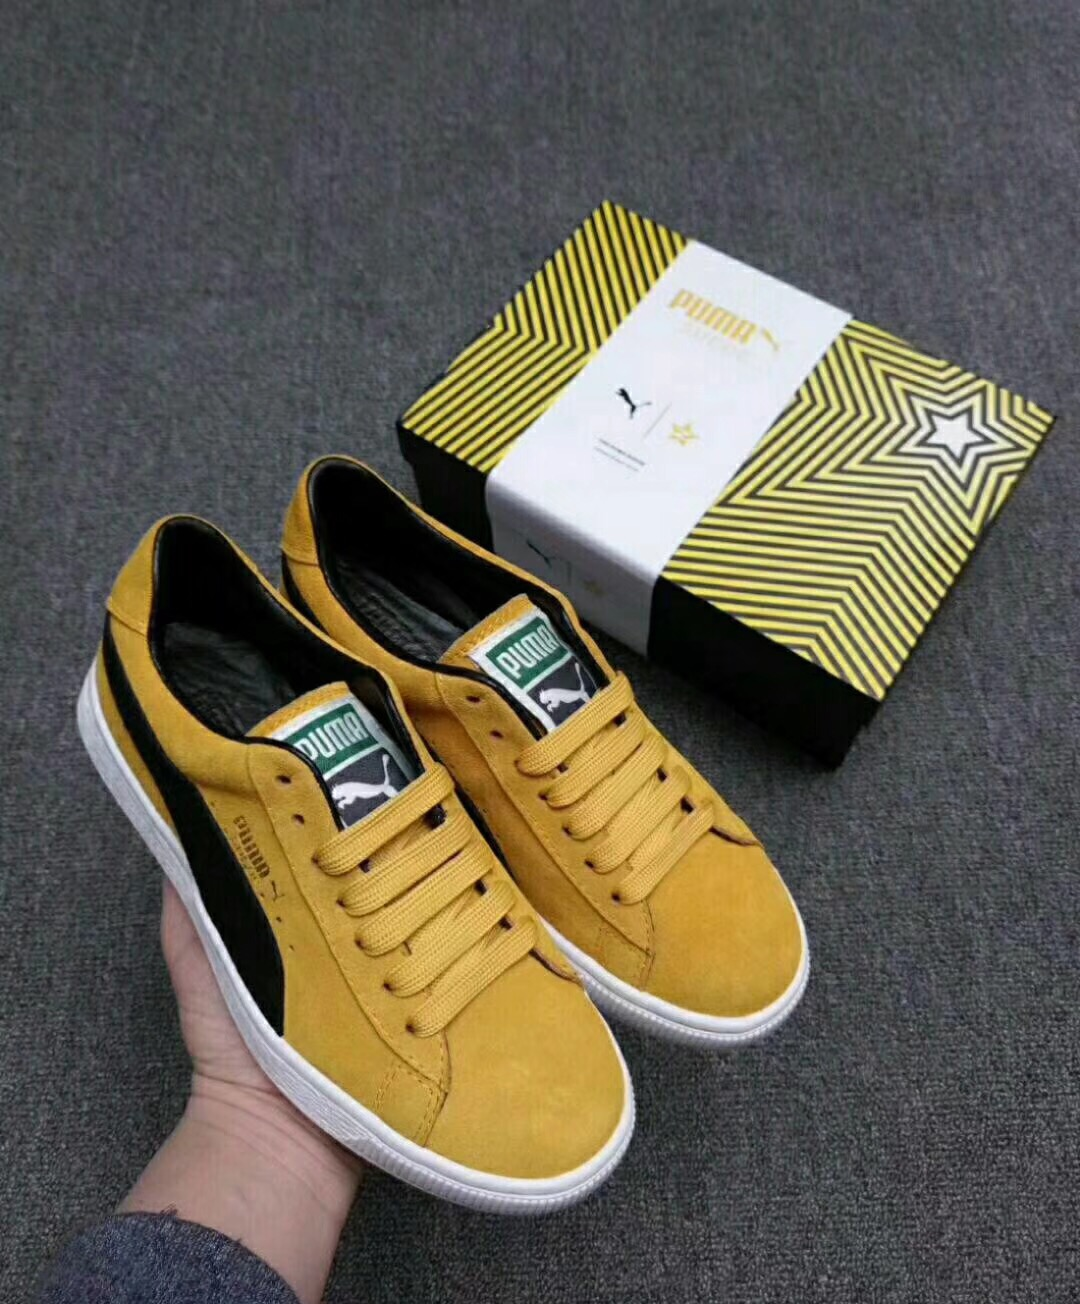 02215ba15ce9 Buy mens shoes puma and get free shipping on AliExpress.com